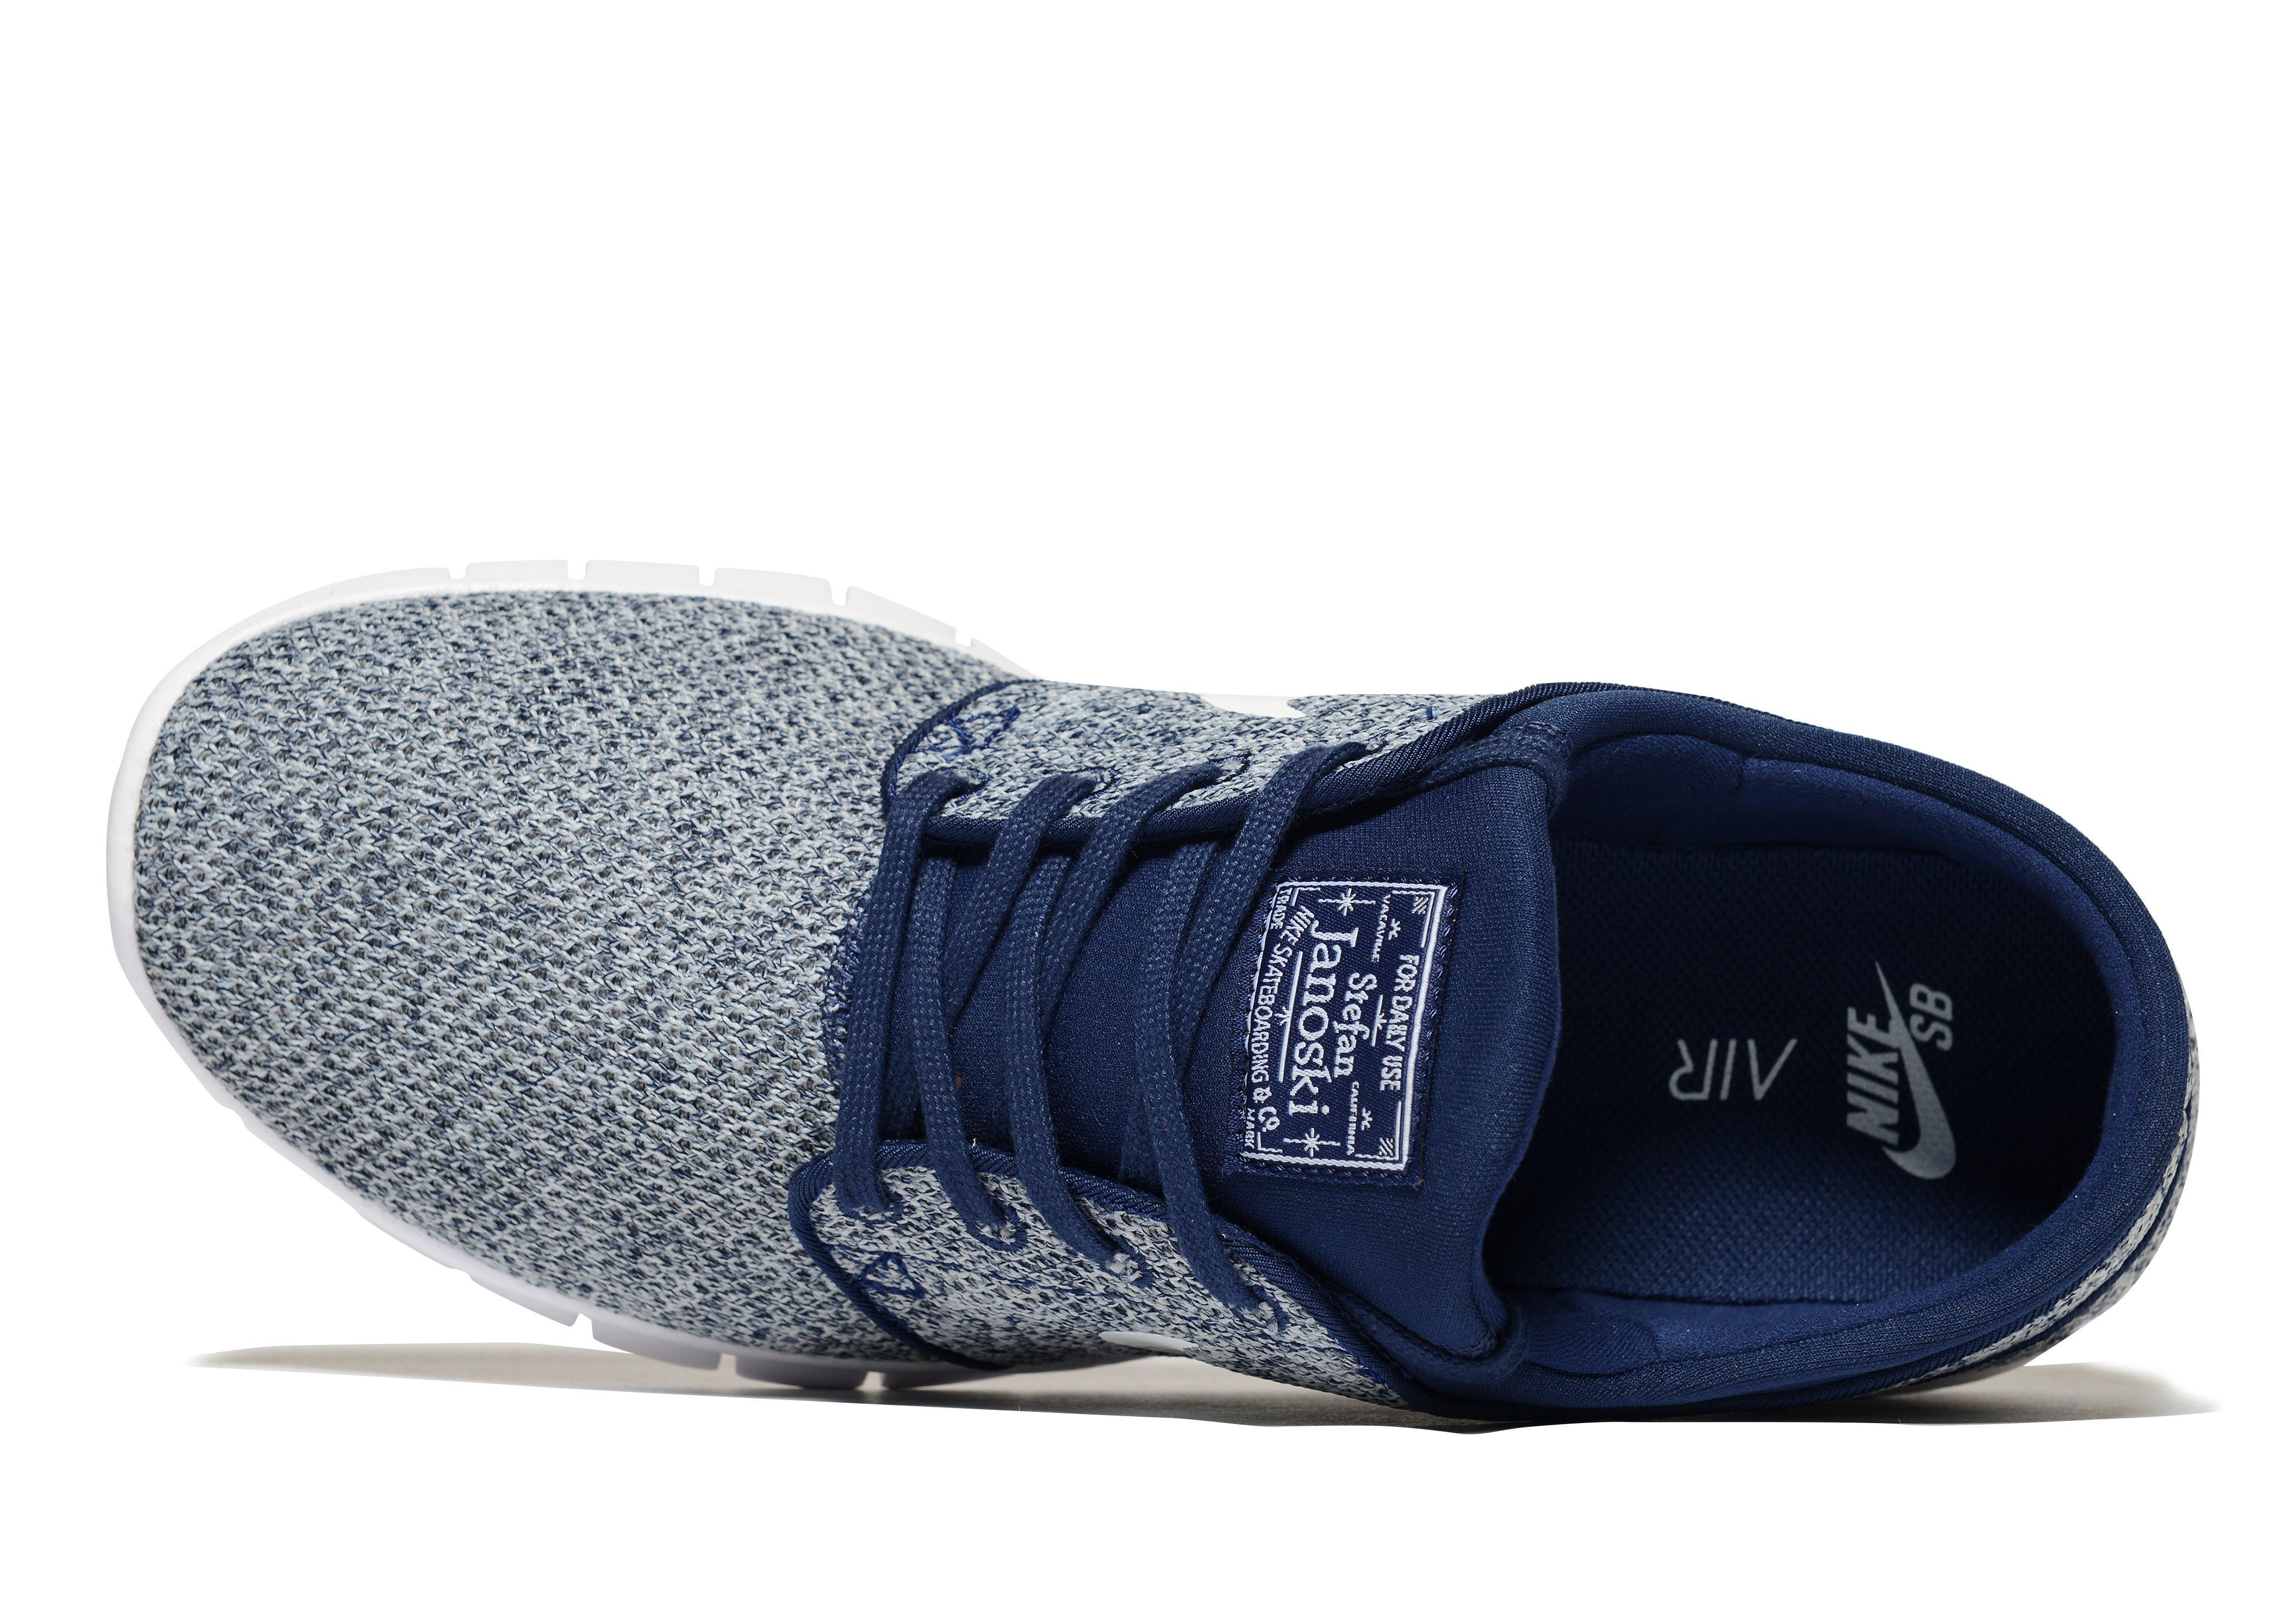 Nike Janoski Blue Lyst for in Homme Stefan Max d41aWzwFna